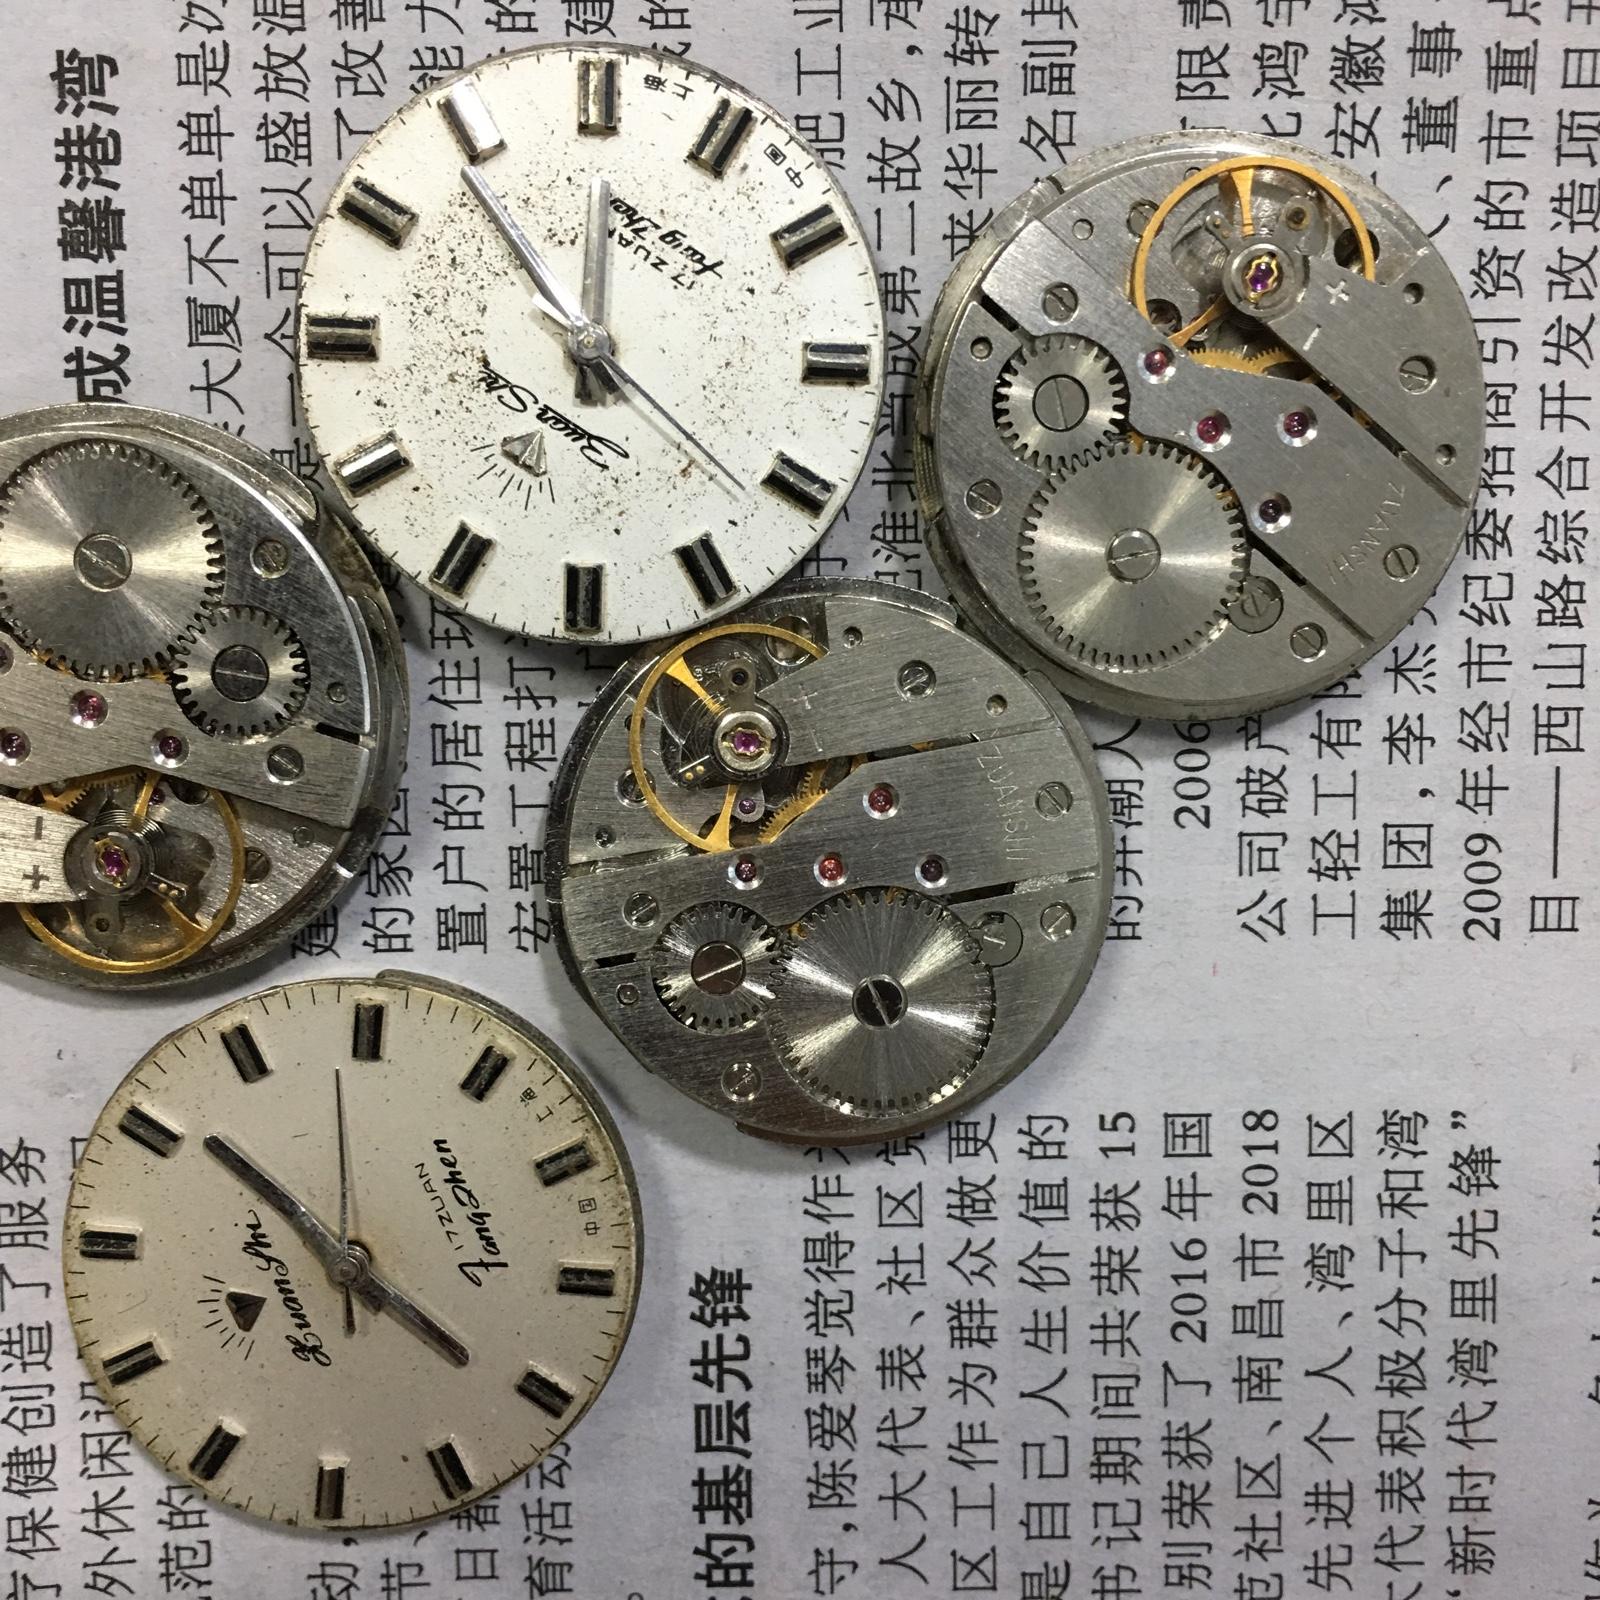 SM movement old watch Steampunk good material old mechanical watch jewelry DIY manual machine movement gear